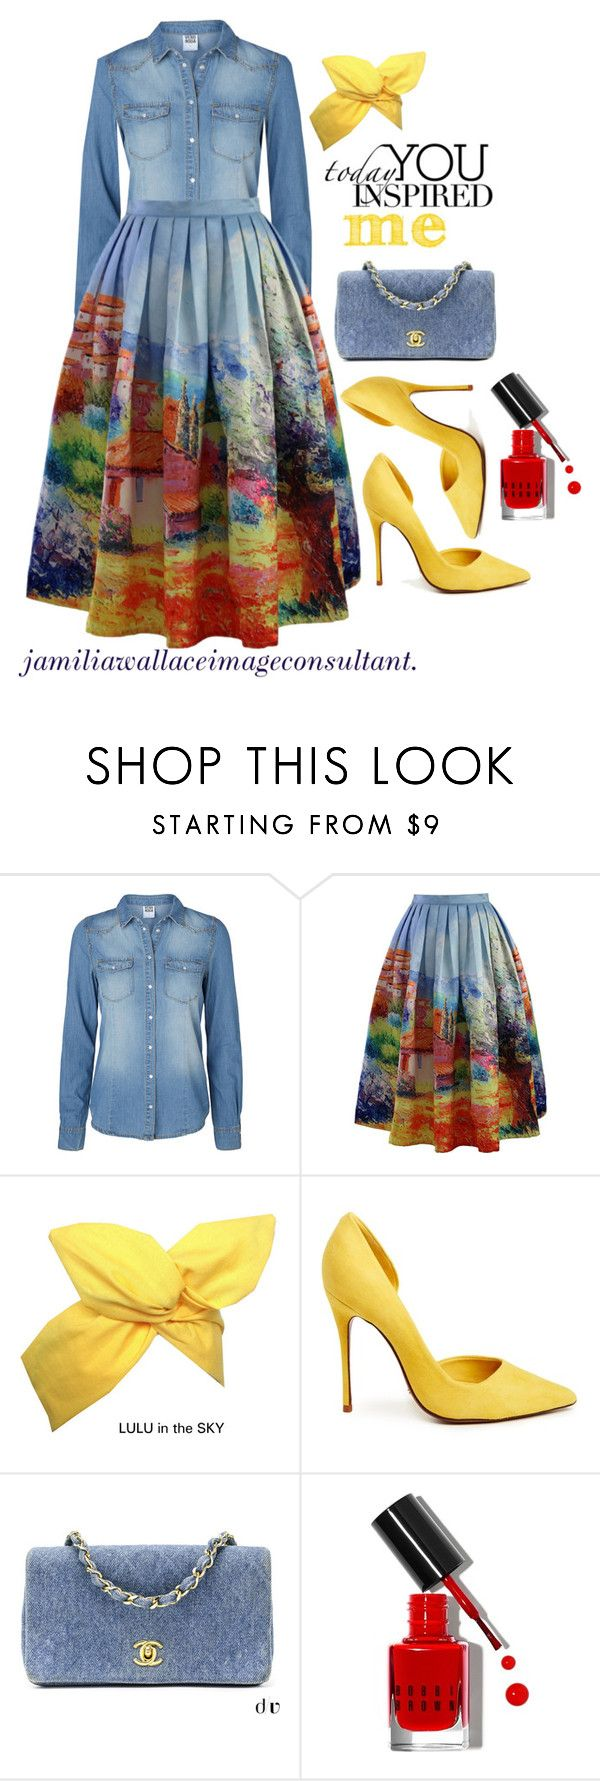 """""""Ideal Image"""" by jamilia-wallace ❤ liked on Polyvore featuring Vero Moda, Chicwish, Schutz, Chanel and Bobbi Brown Cosmetics"""